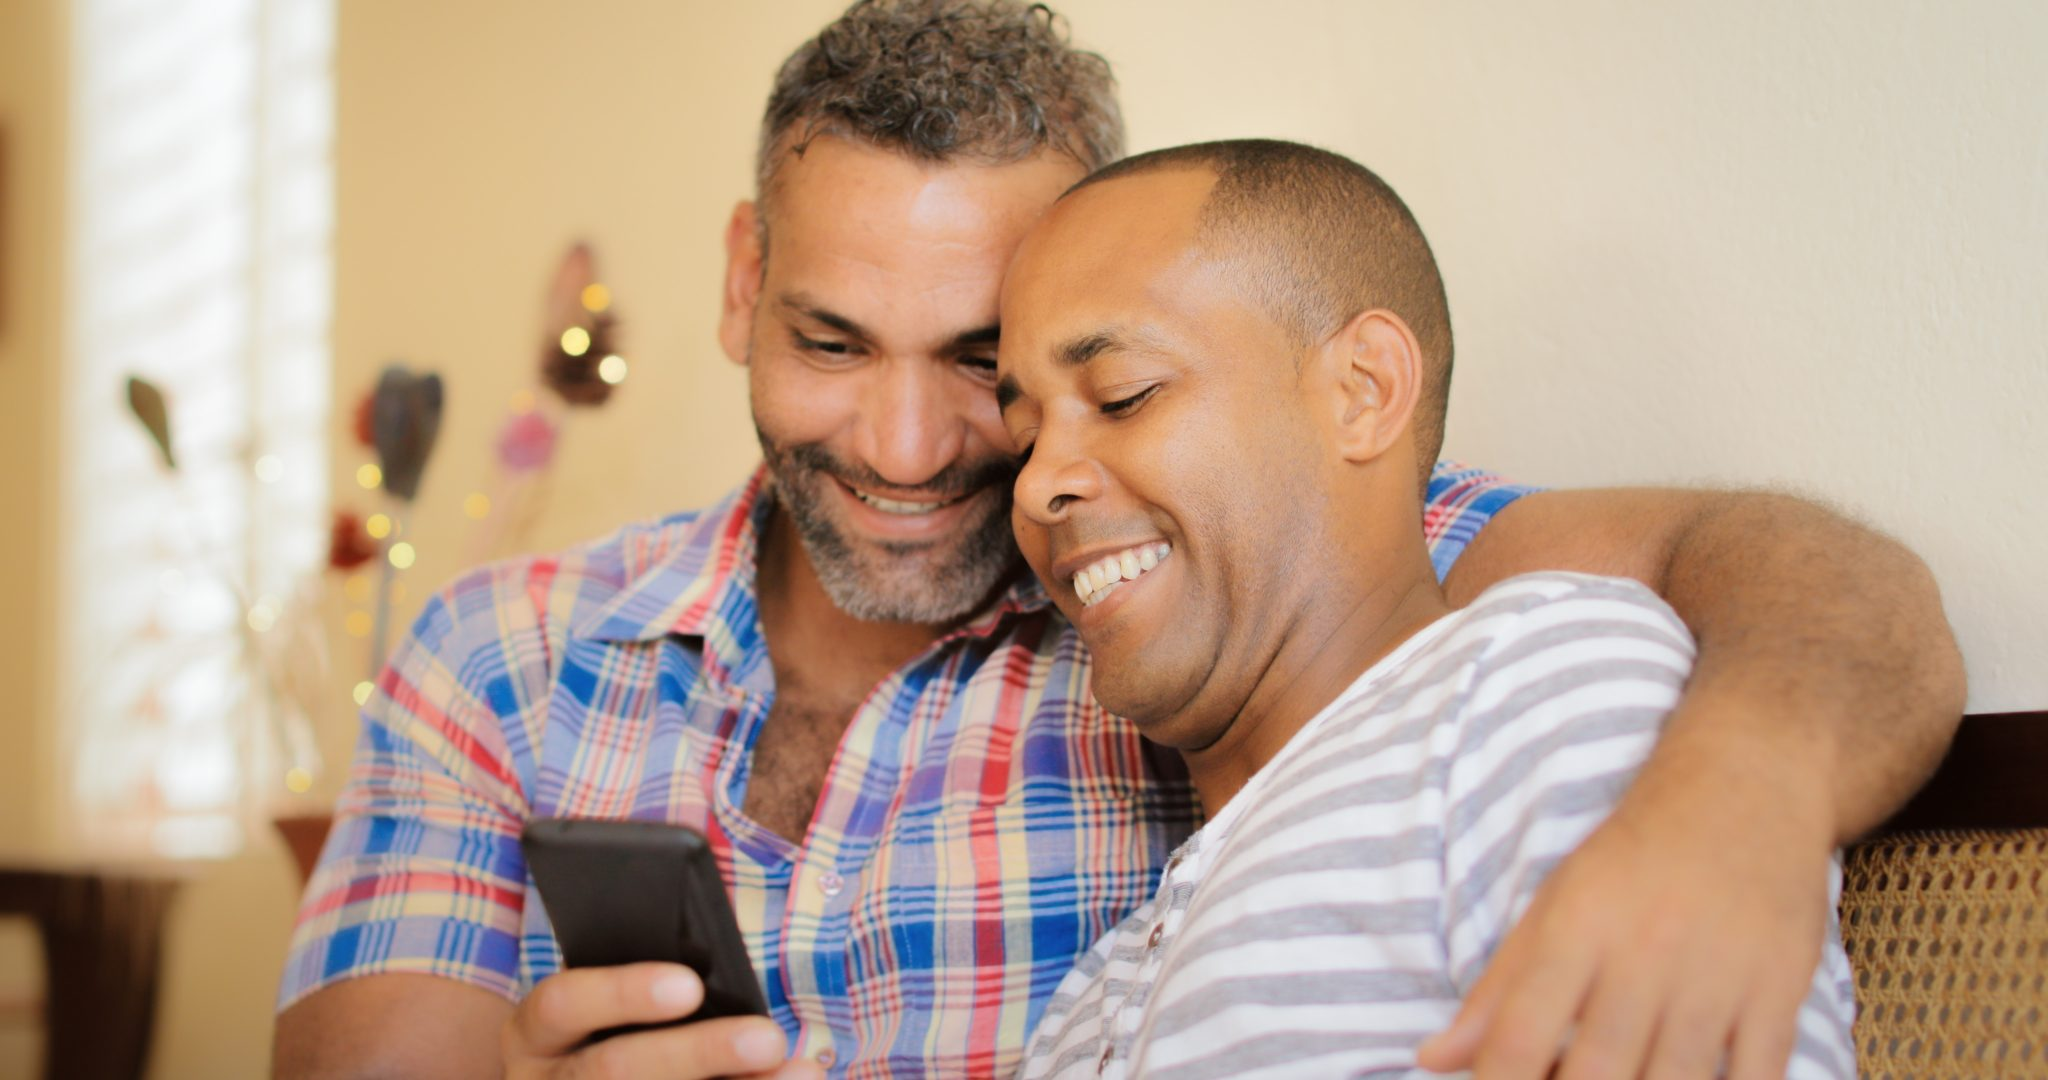 Two smiling men, sitting together in an embrace looking at their cell phone.